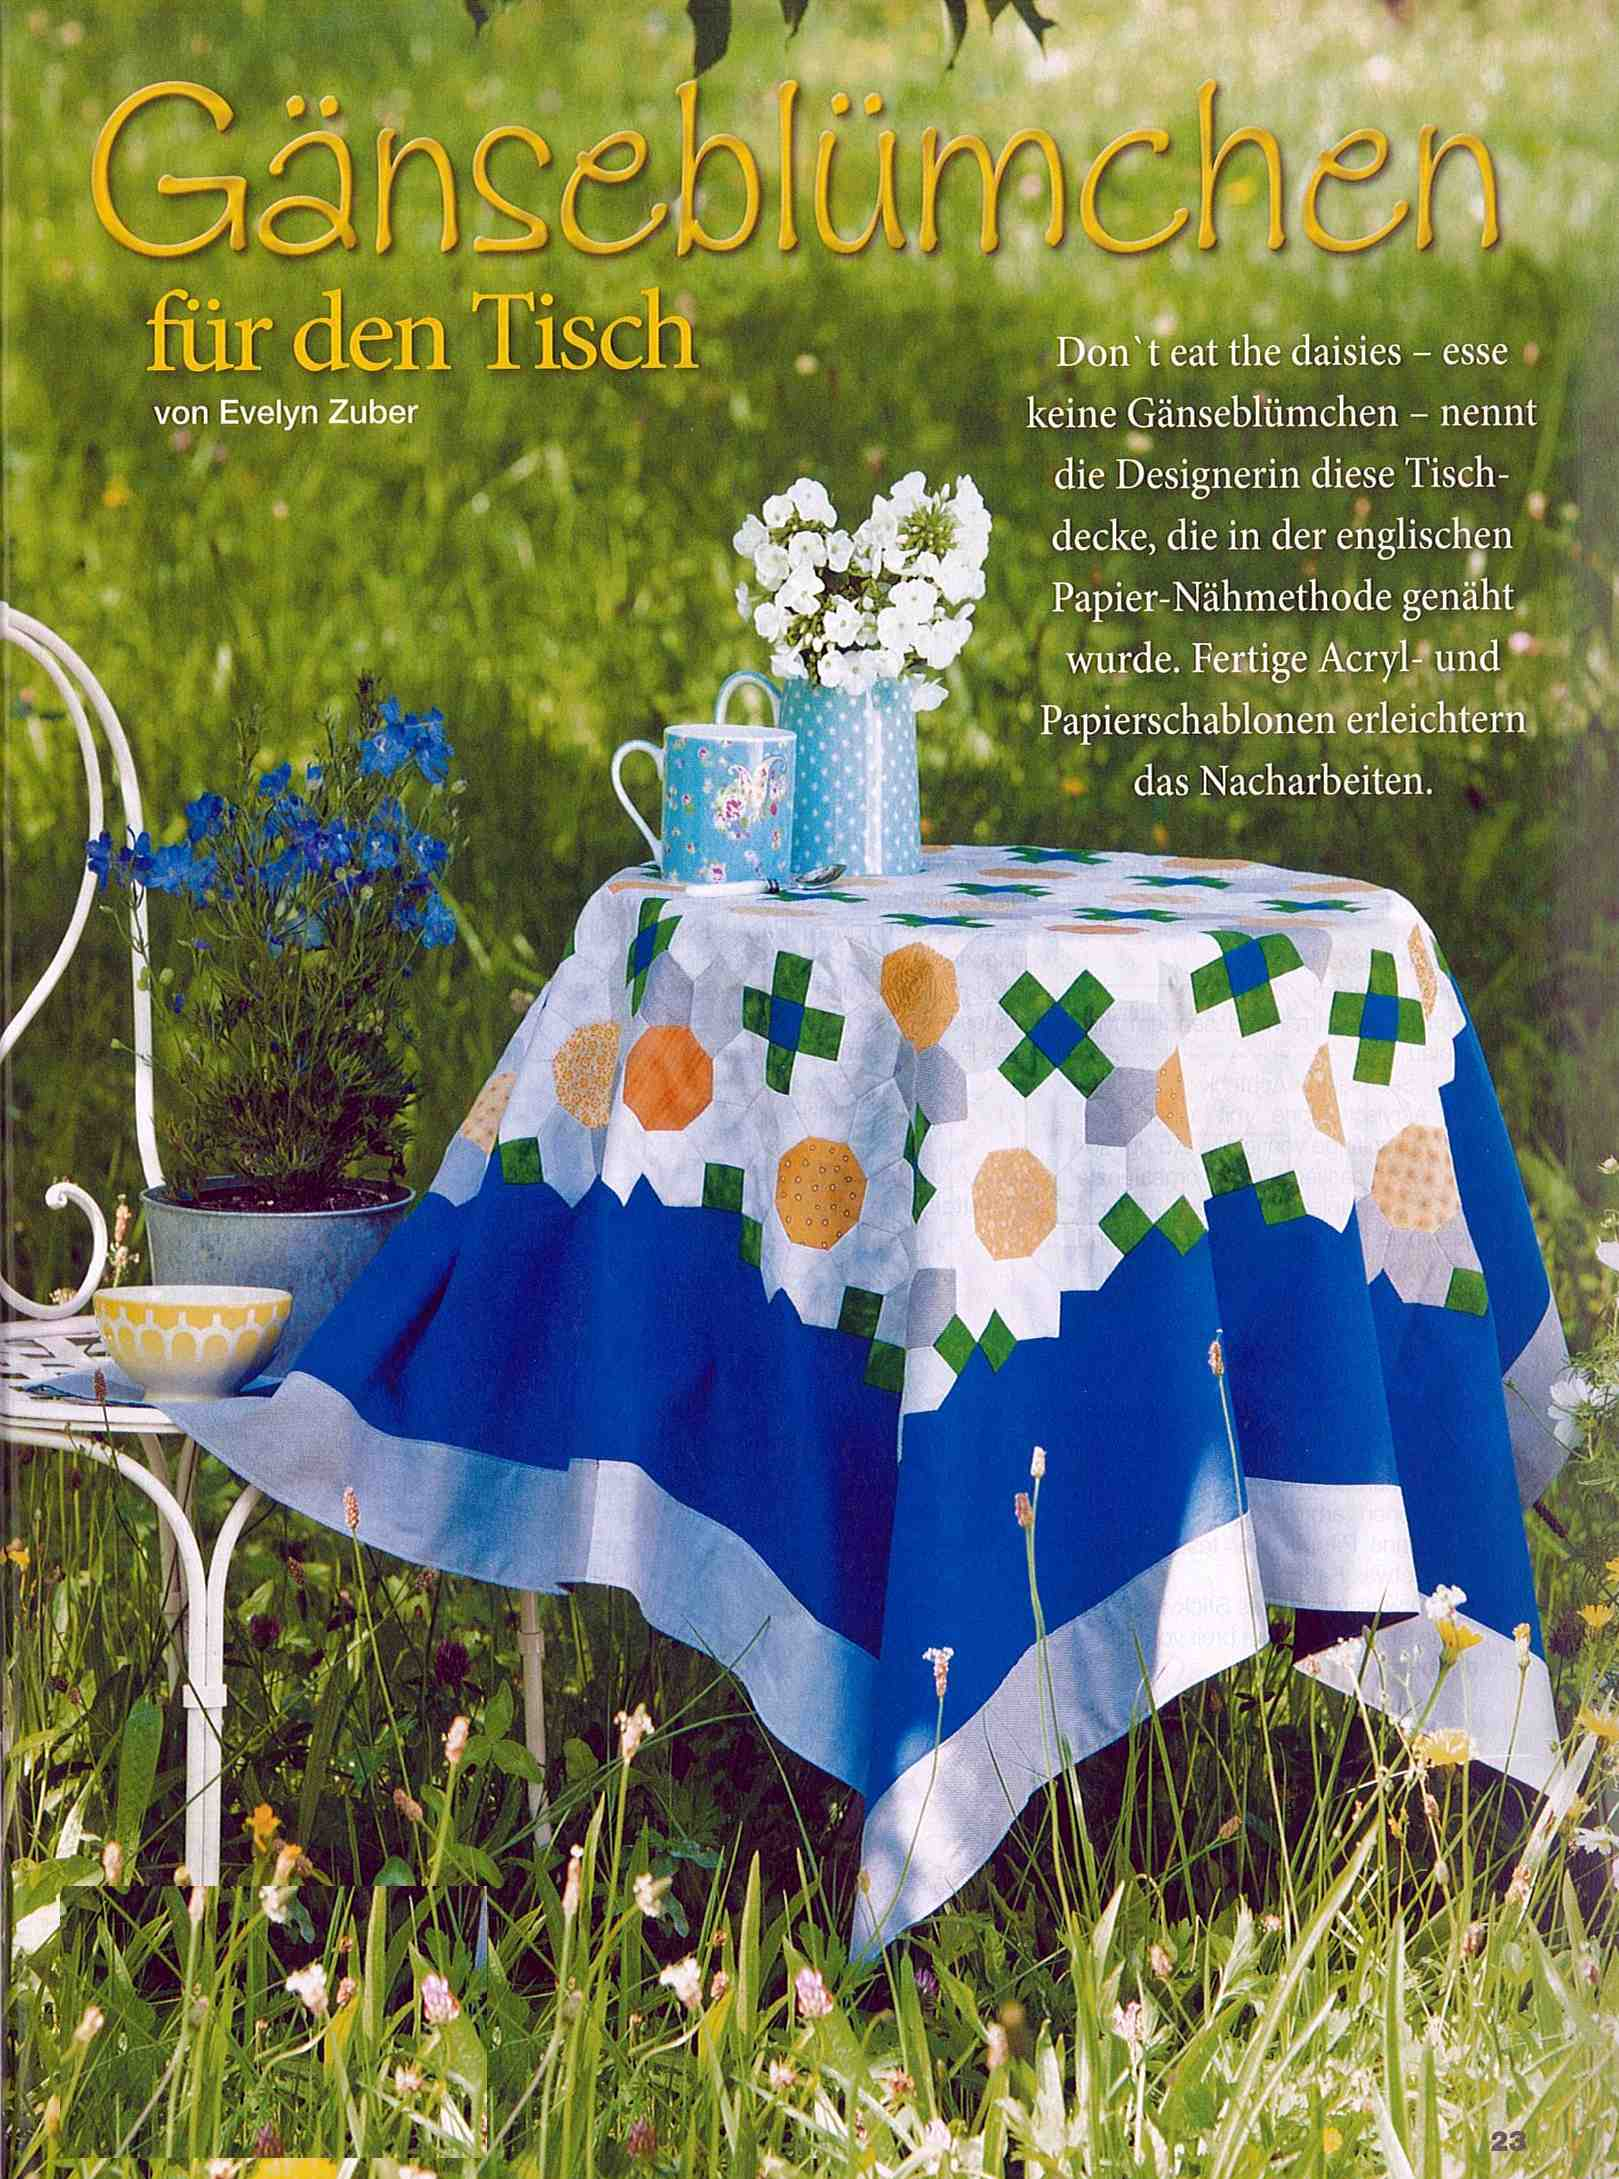 Don't eat the daisies, LENAs Patchwork No. 24/2013